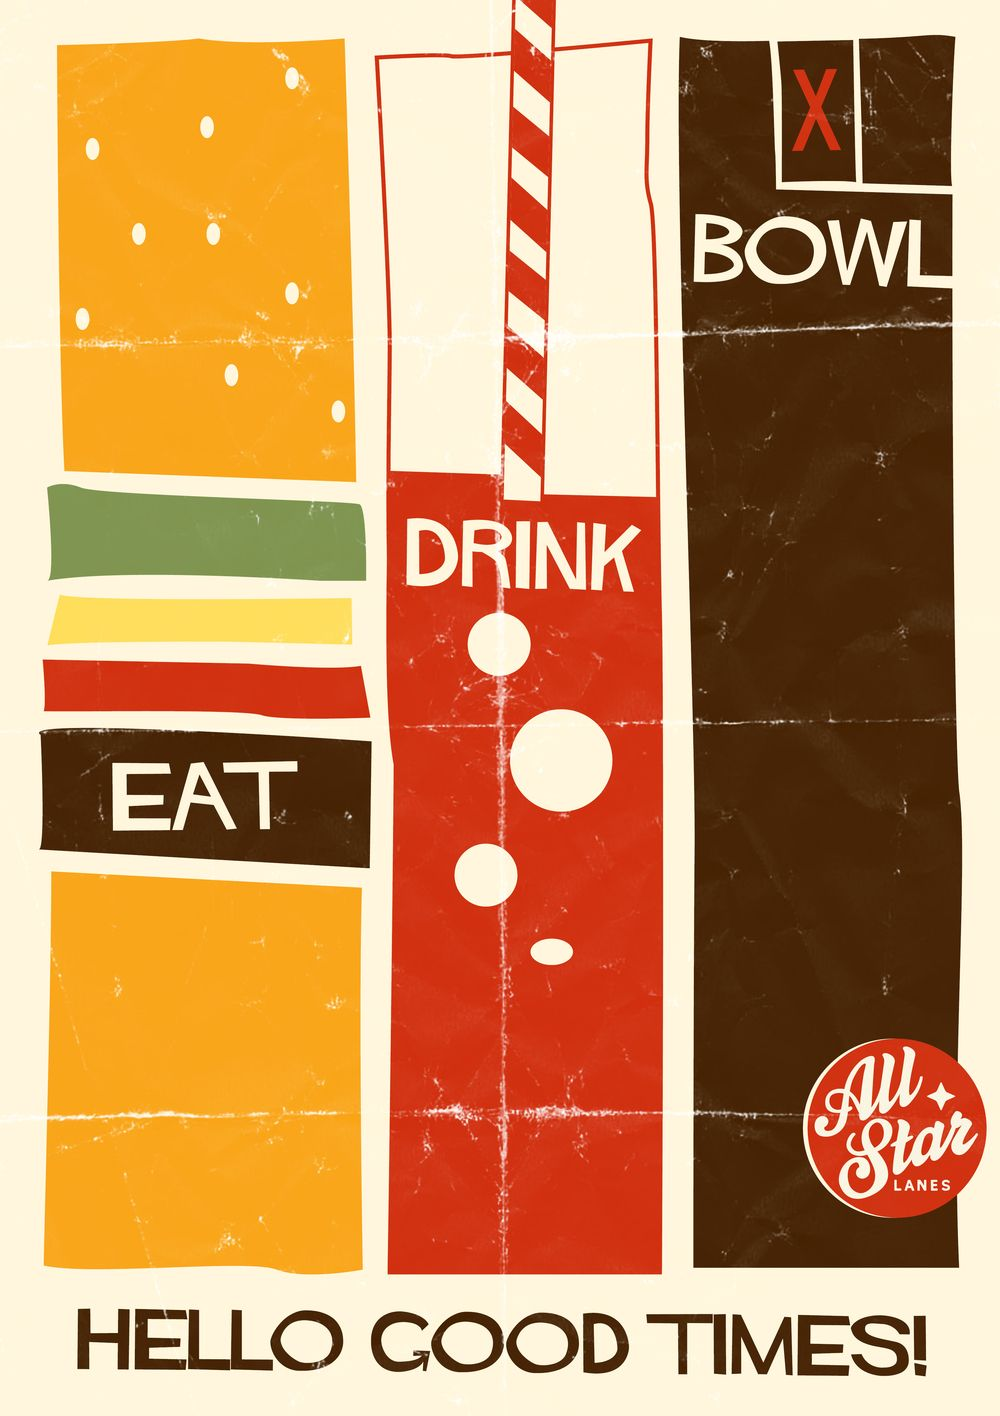 Poster design london - Vintage Poster Design Illustration For All Star Lanes Bowling Bar And Restaurant In London And